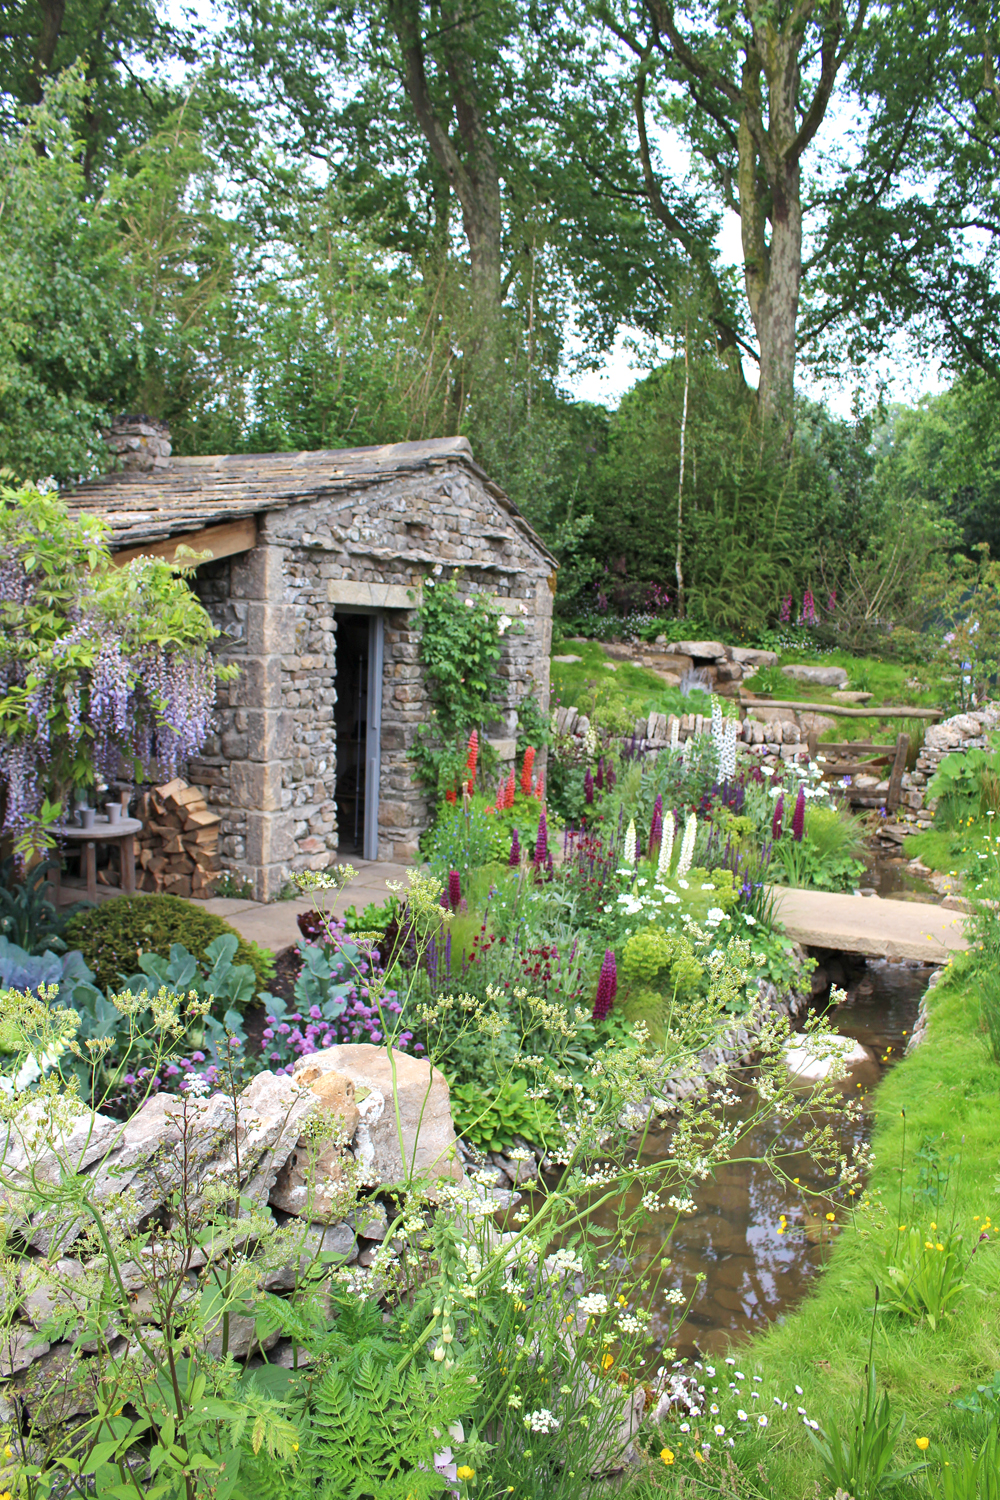 The Welcome to Yorkshire Garden at Chelsea Flower Show 2018 - London lifestyle blog